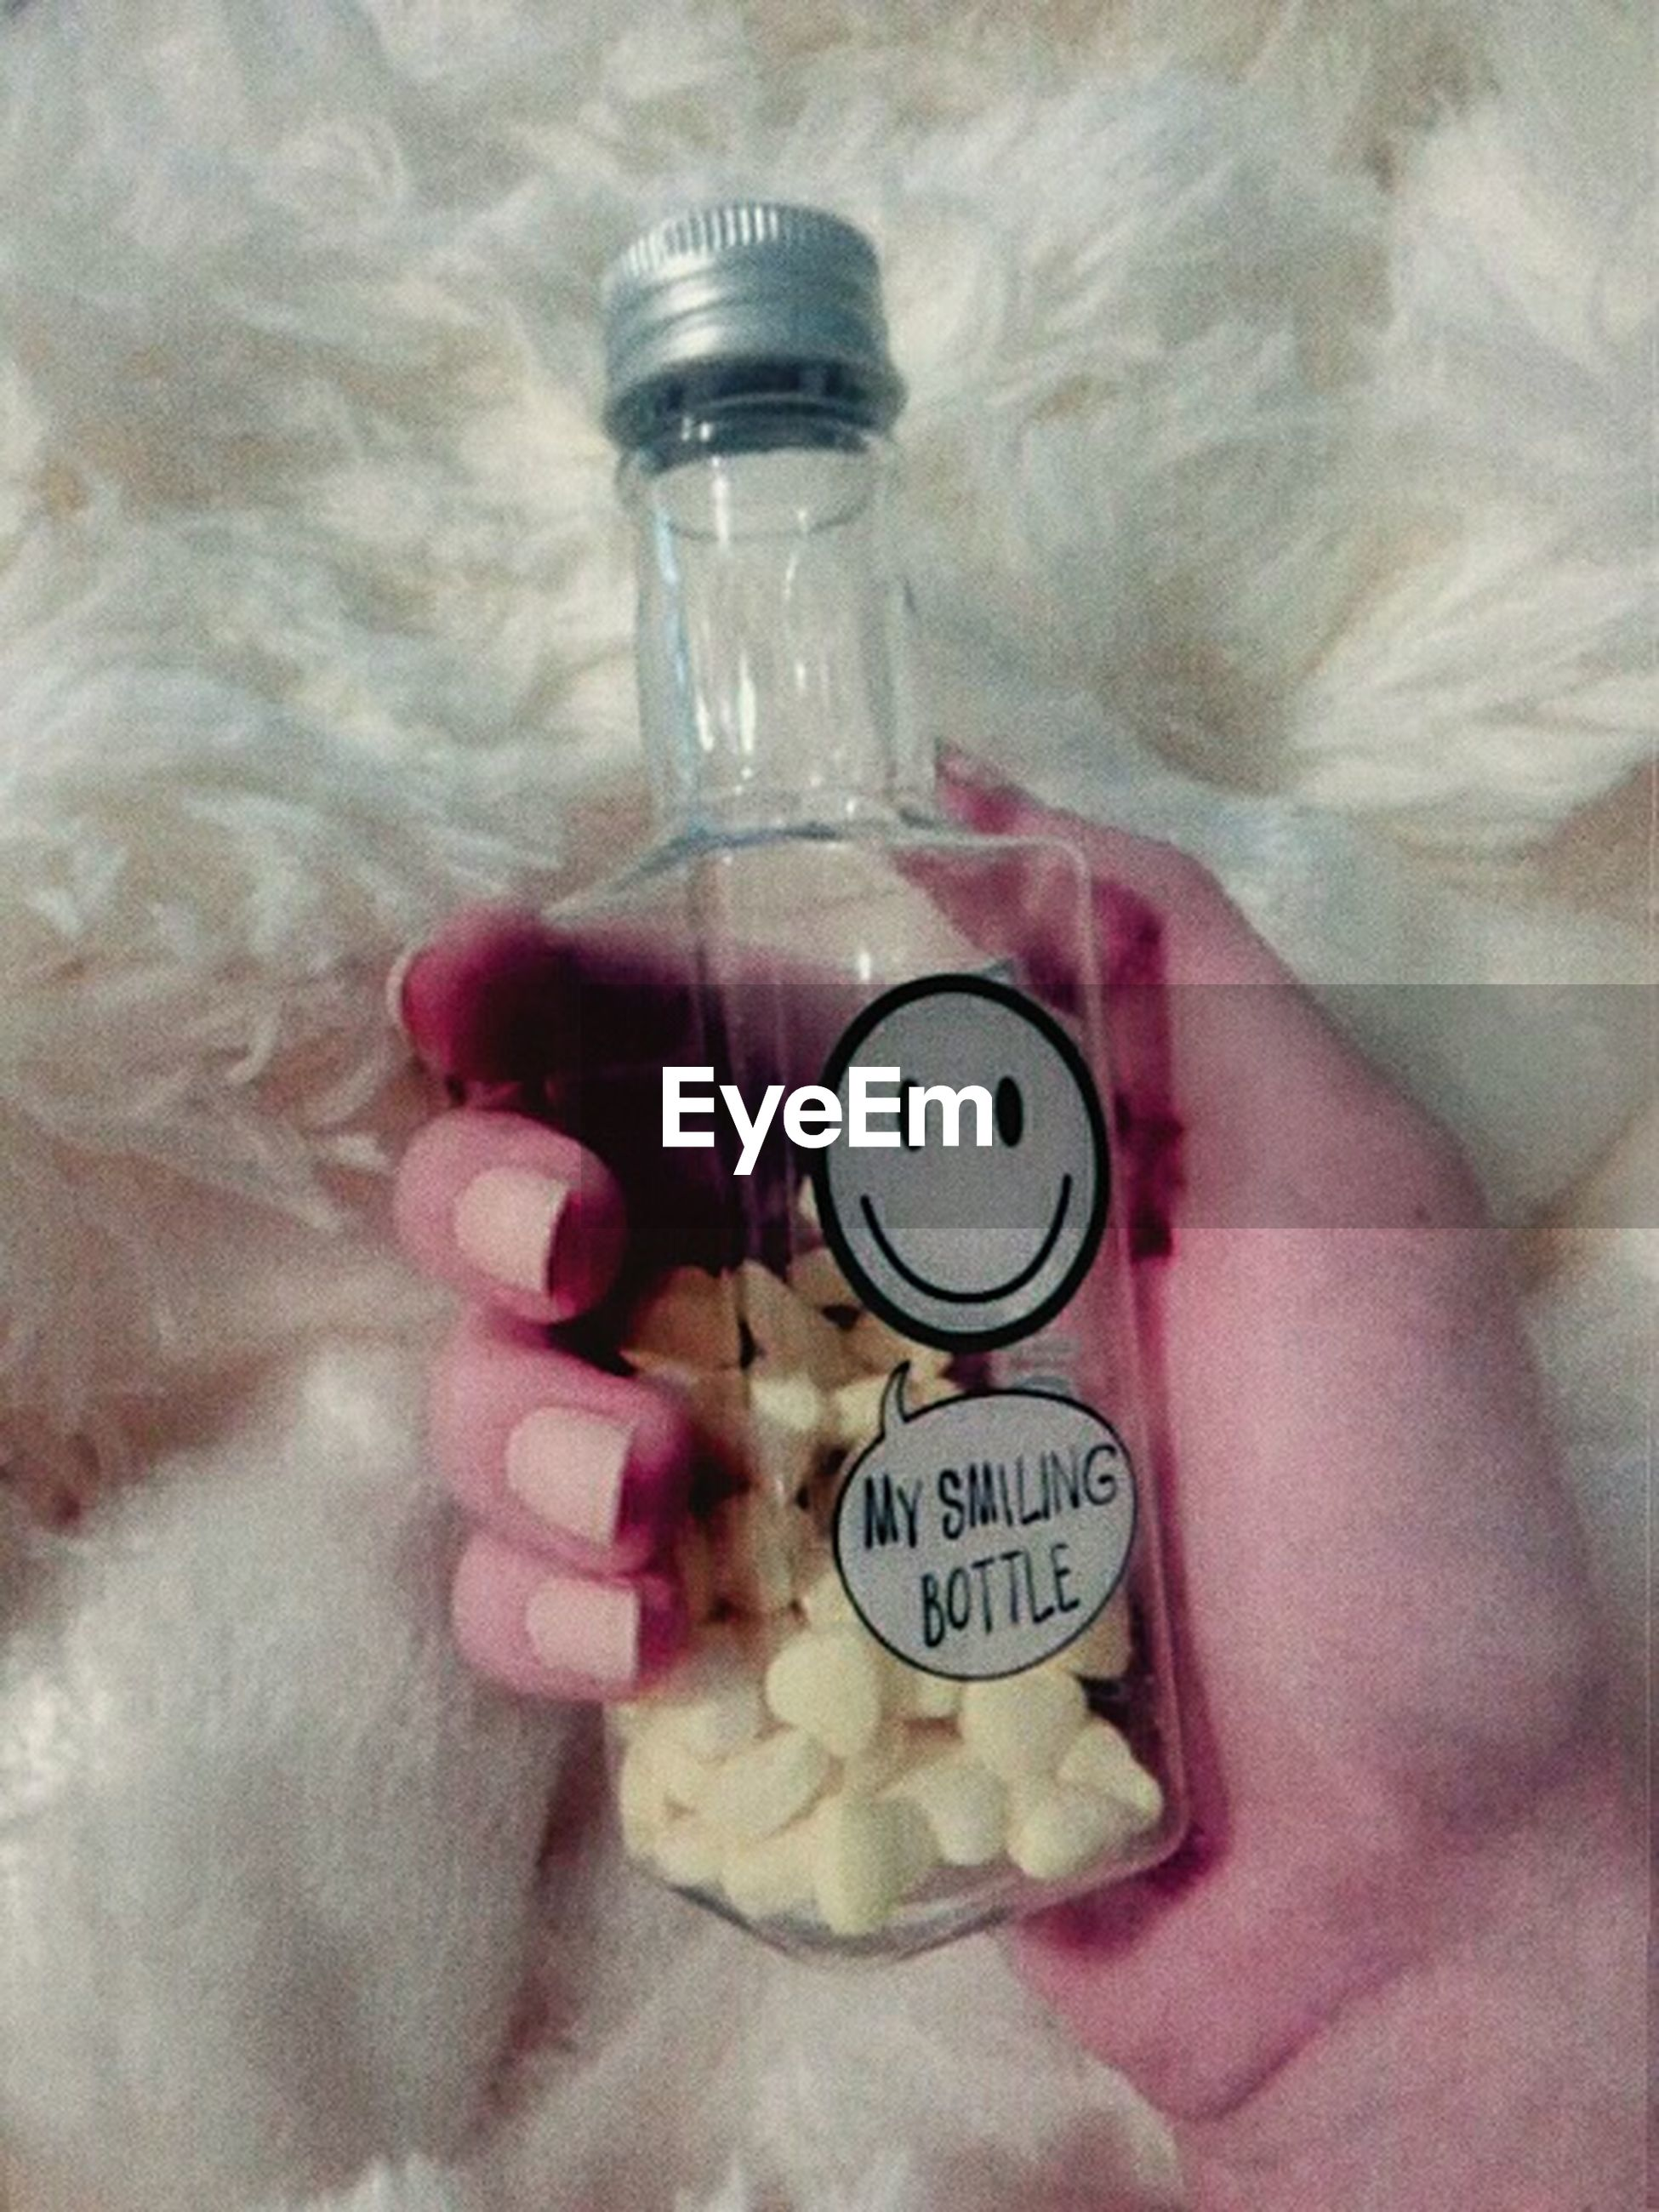 container, human hand, indoors, bottle, holding, close-up, hand, glass - material, jar, real people, pink color, one person, text, human body part, transparent, table, communication, food and drink, message